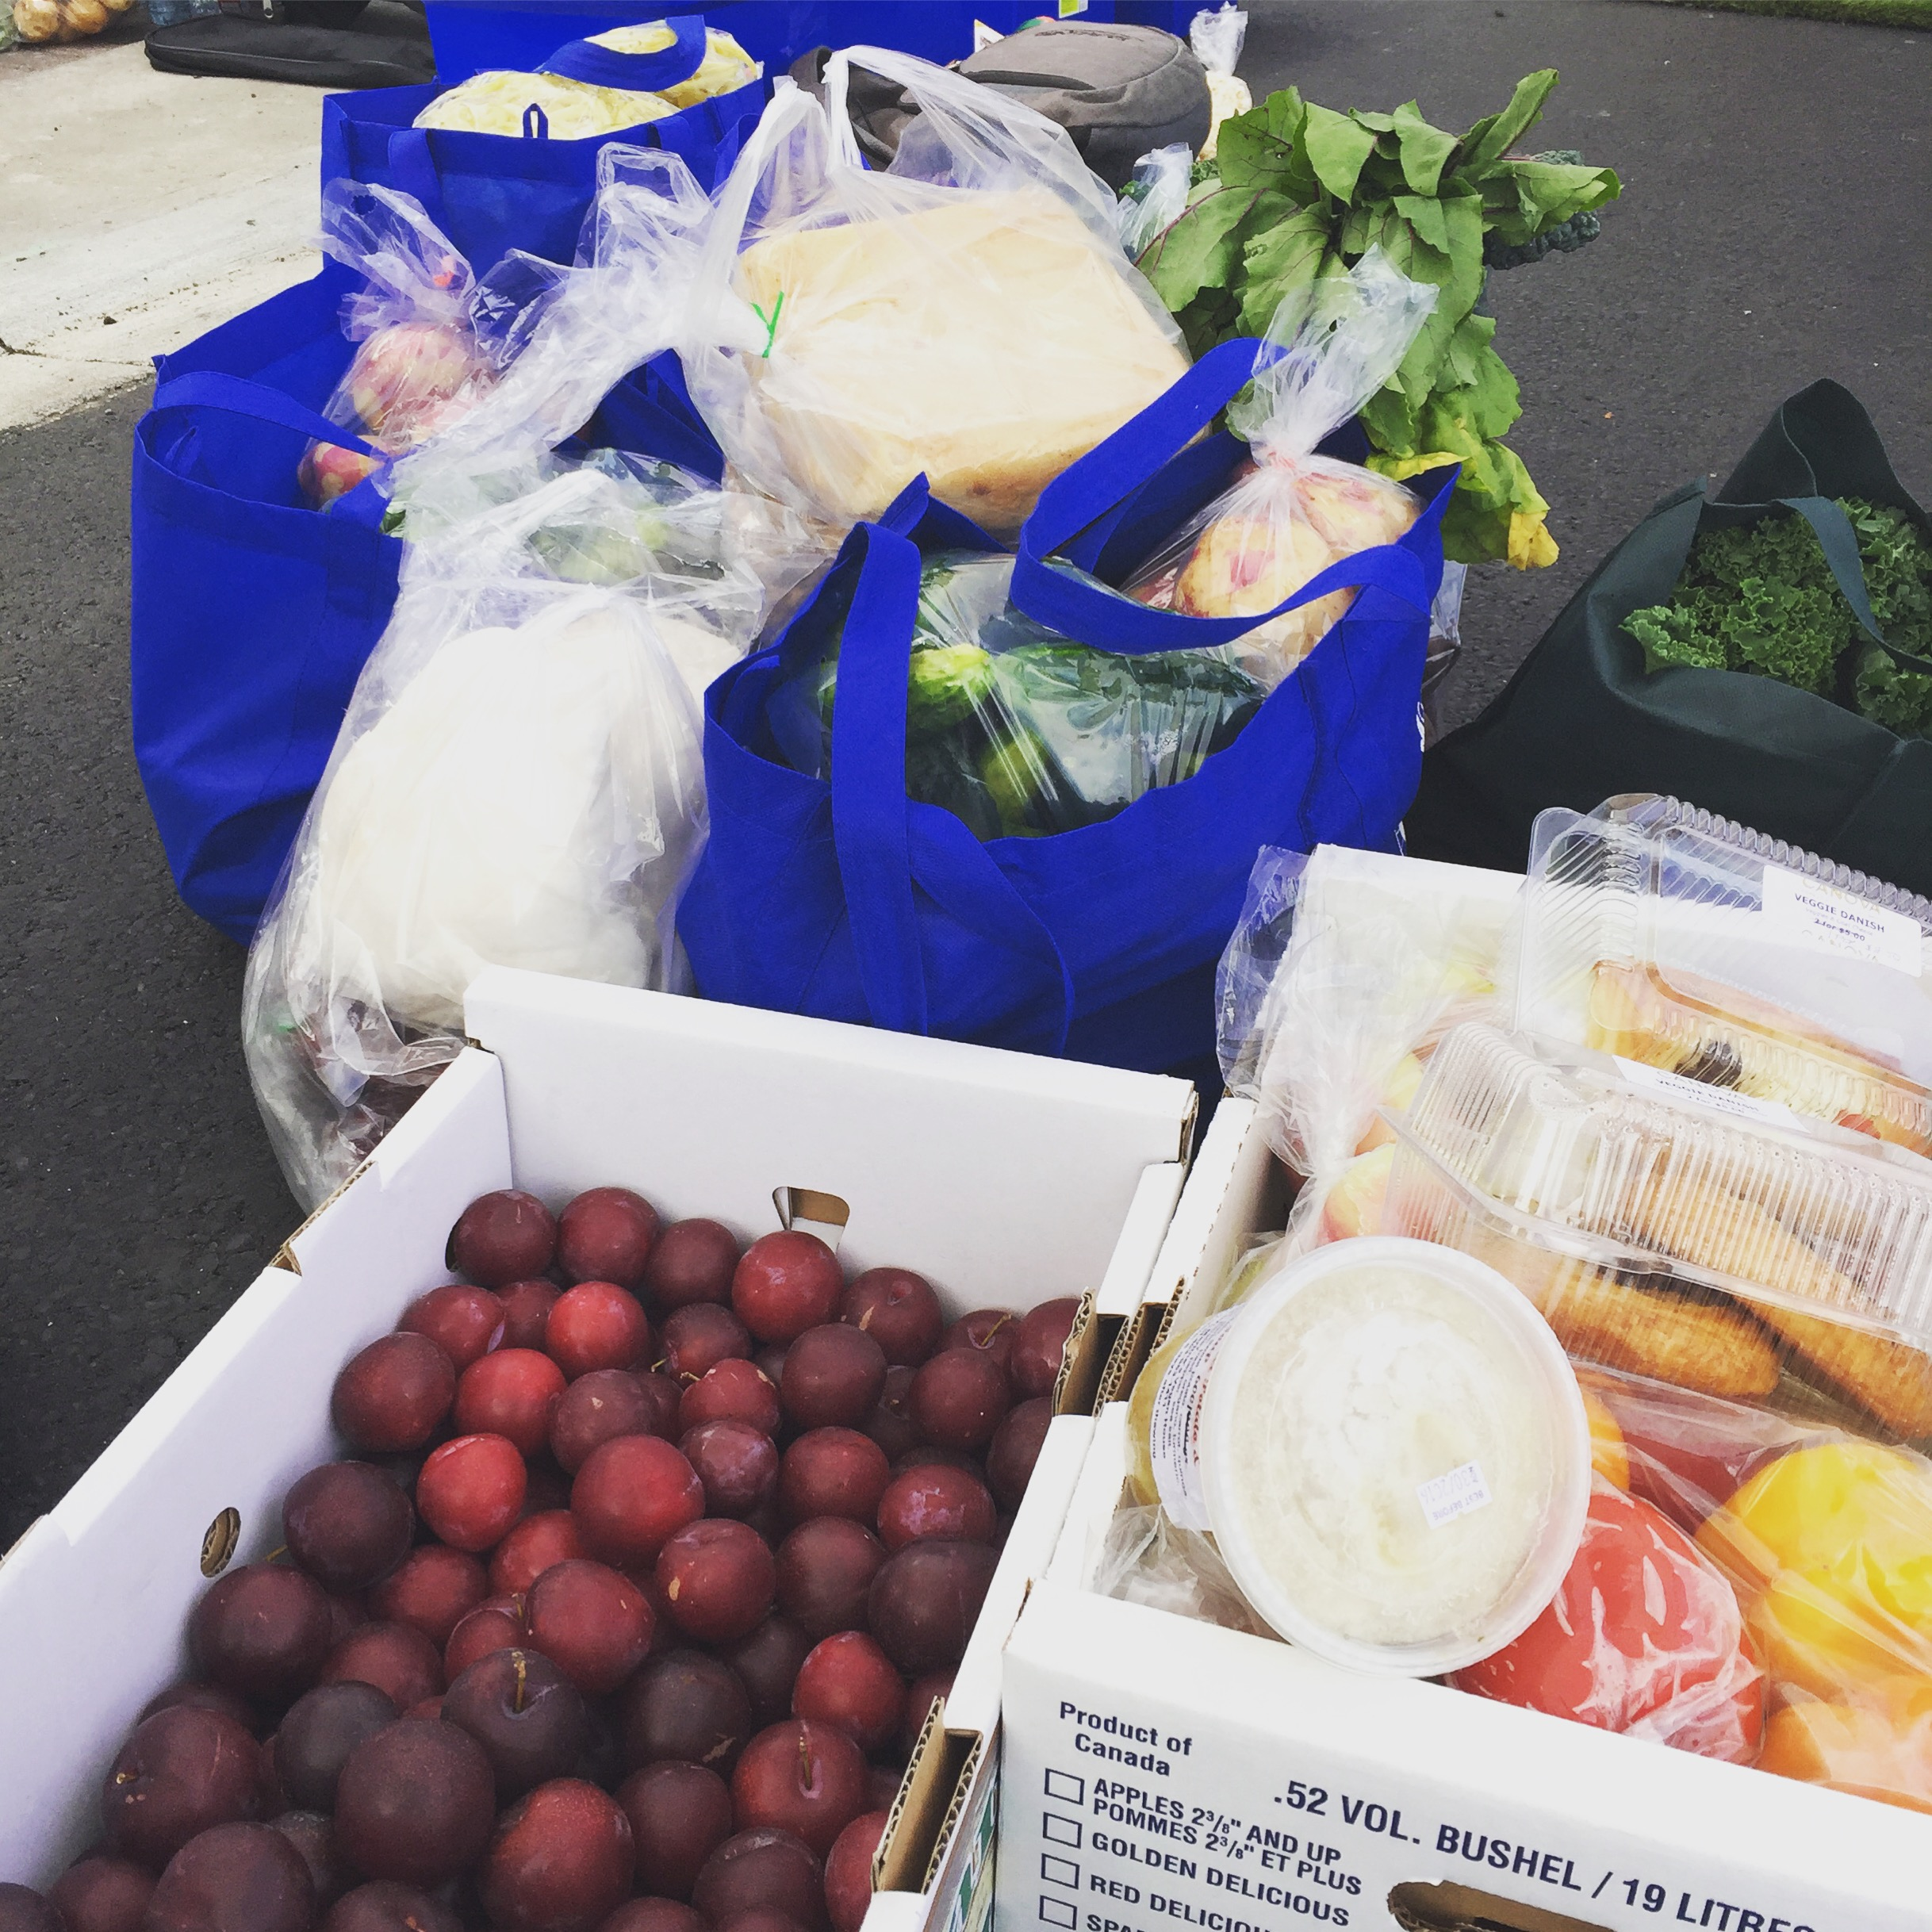 The Market is a proud supporter of the St. Albert Food Bank - Every market day we collect donations for the local food bank of products that would otherwise go to waste. In 2017 we raised over 5,000 lbs of food!